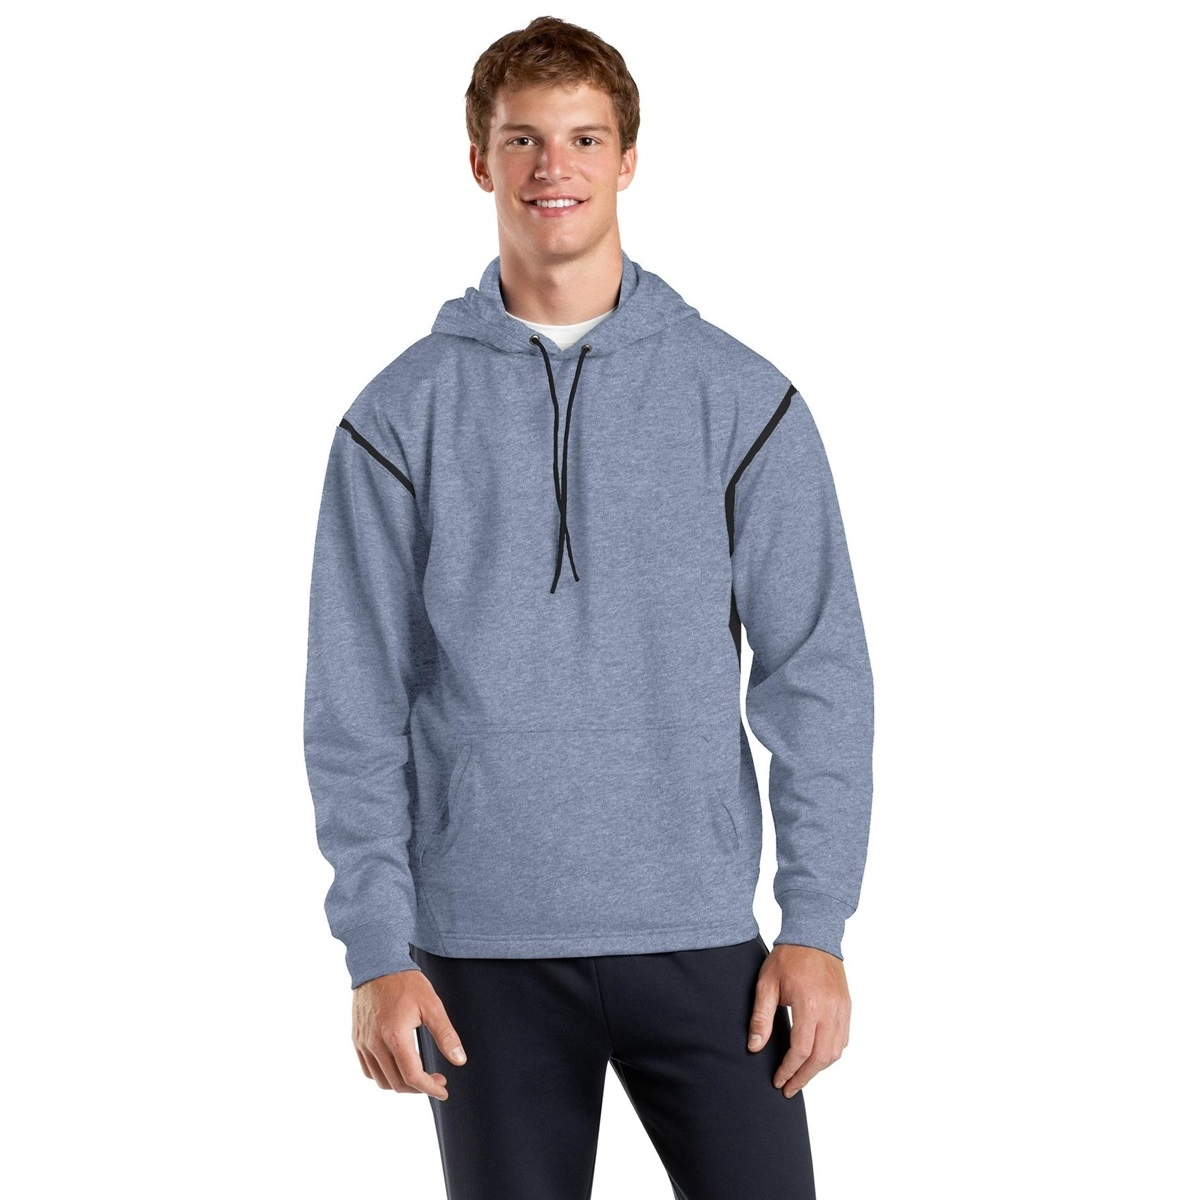 Sport-Tek TST246 Tall Tech Fleece Hooded Sweatshirt - Grey ...